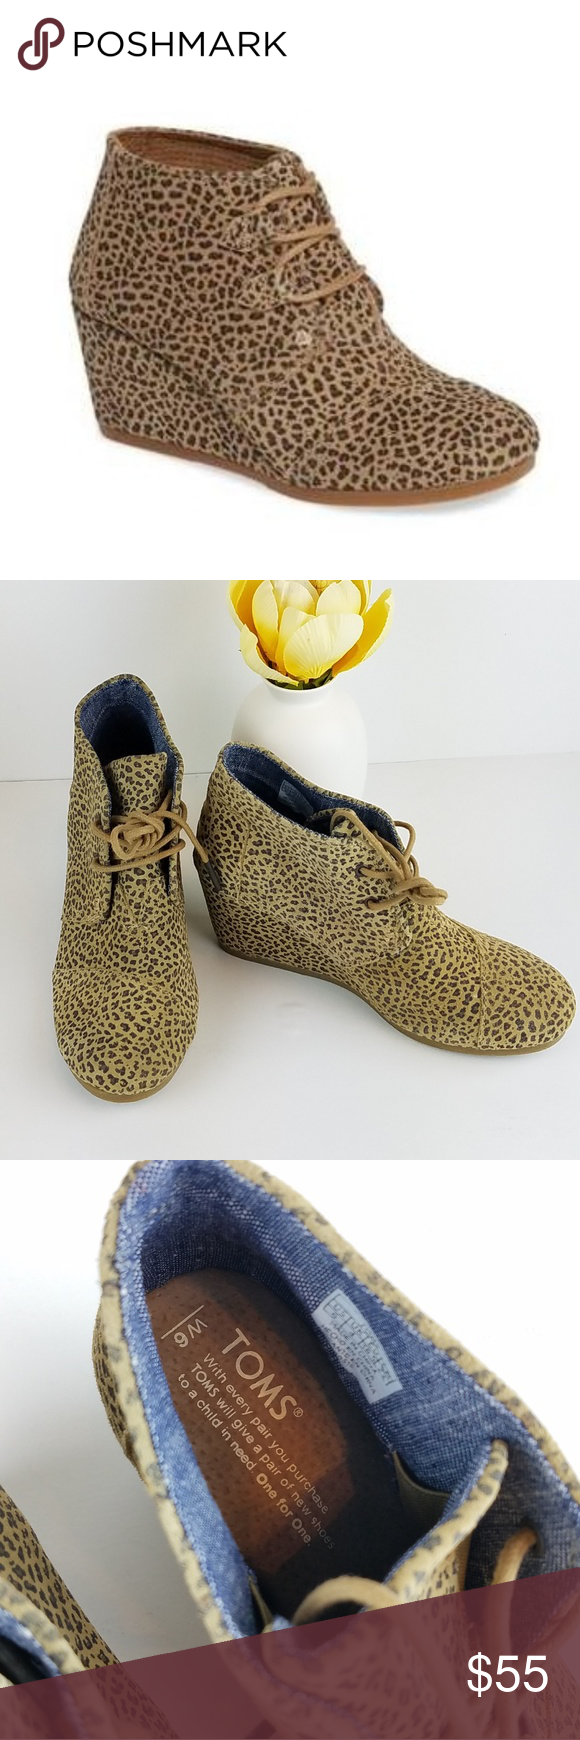 018b2dfe1d3 NWOT Toms Kala Leopard Print Booties NWOT Toms Kala Leopard Print wedge  Booties. Trendy Fall and Winter print this year!!! So cute with skinny  jeans.